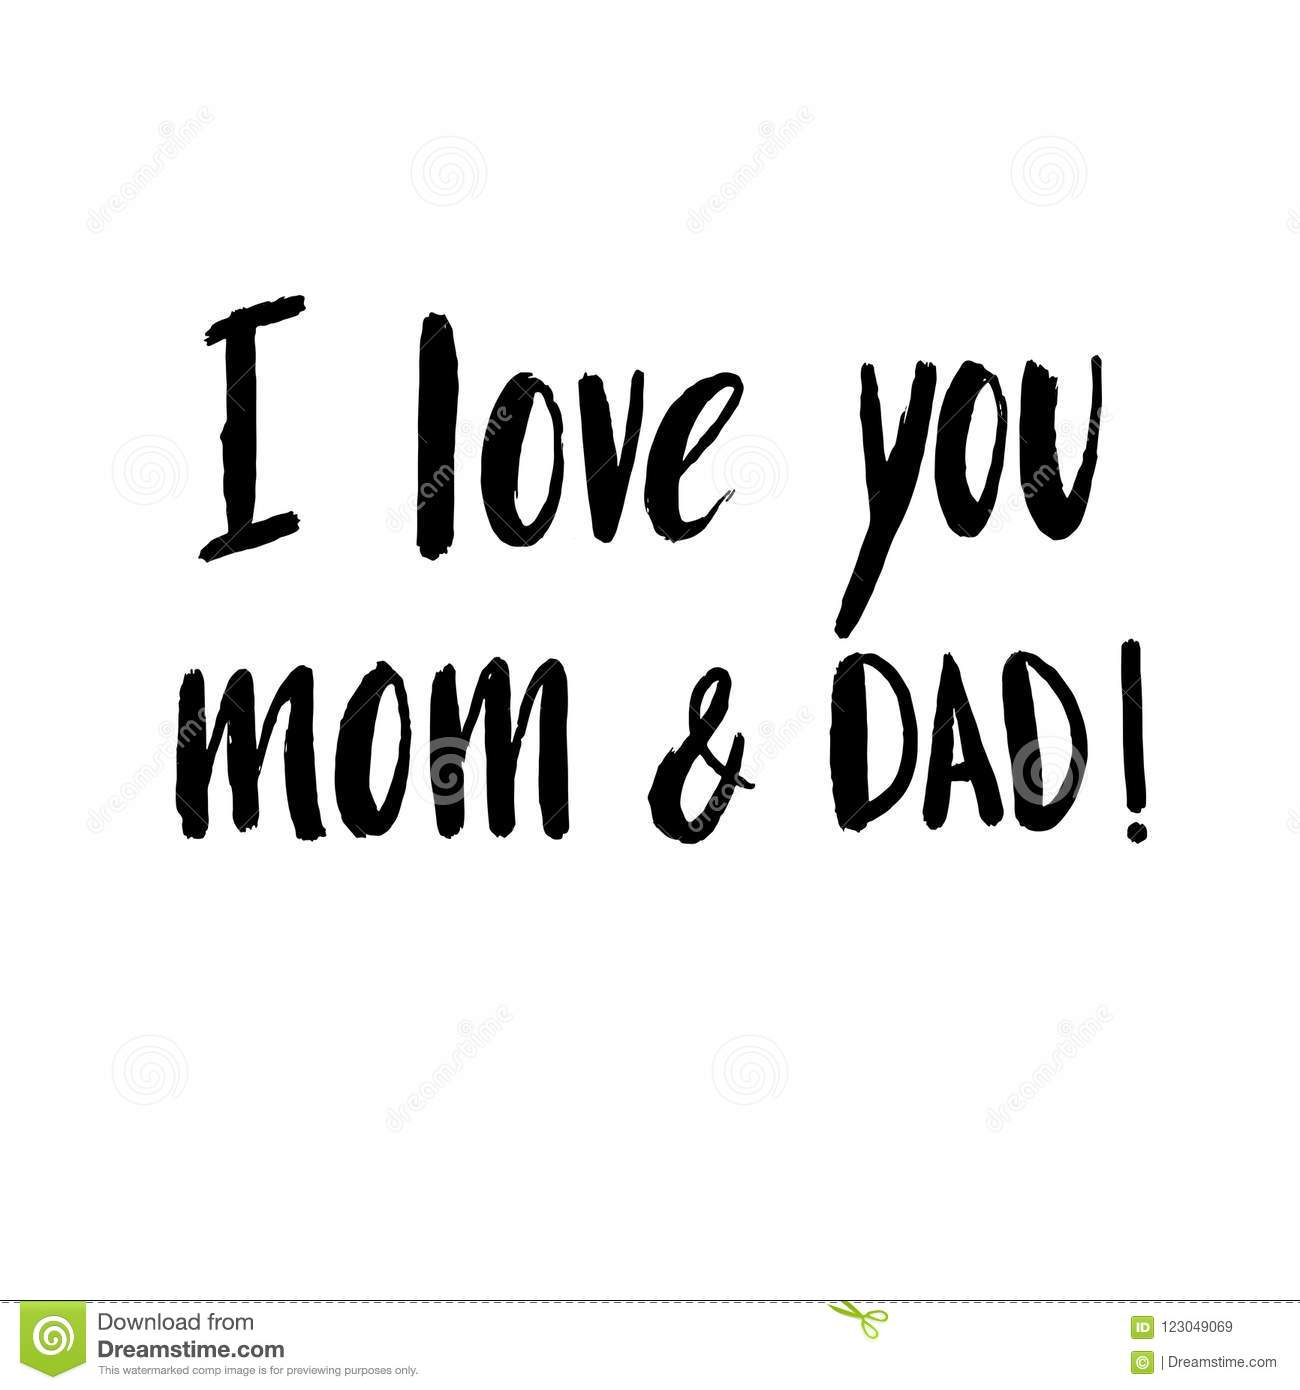 i love you mom and dad pictures i love mom and dad coloring pages coloring home mom dad pictures you and i love